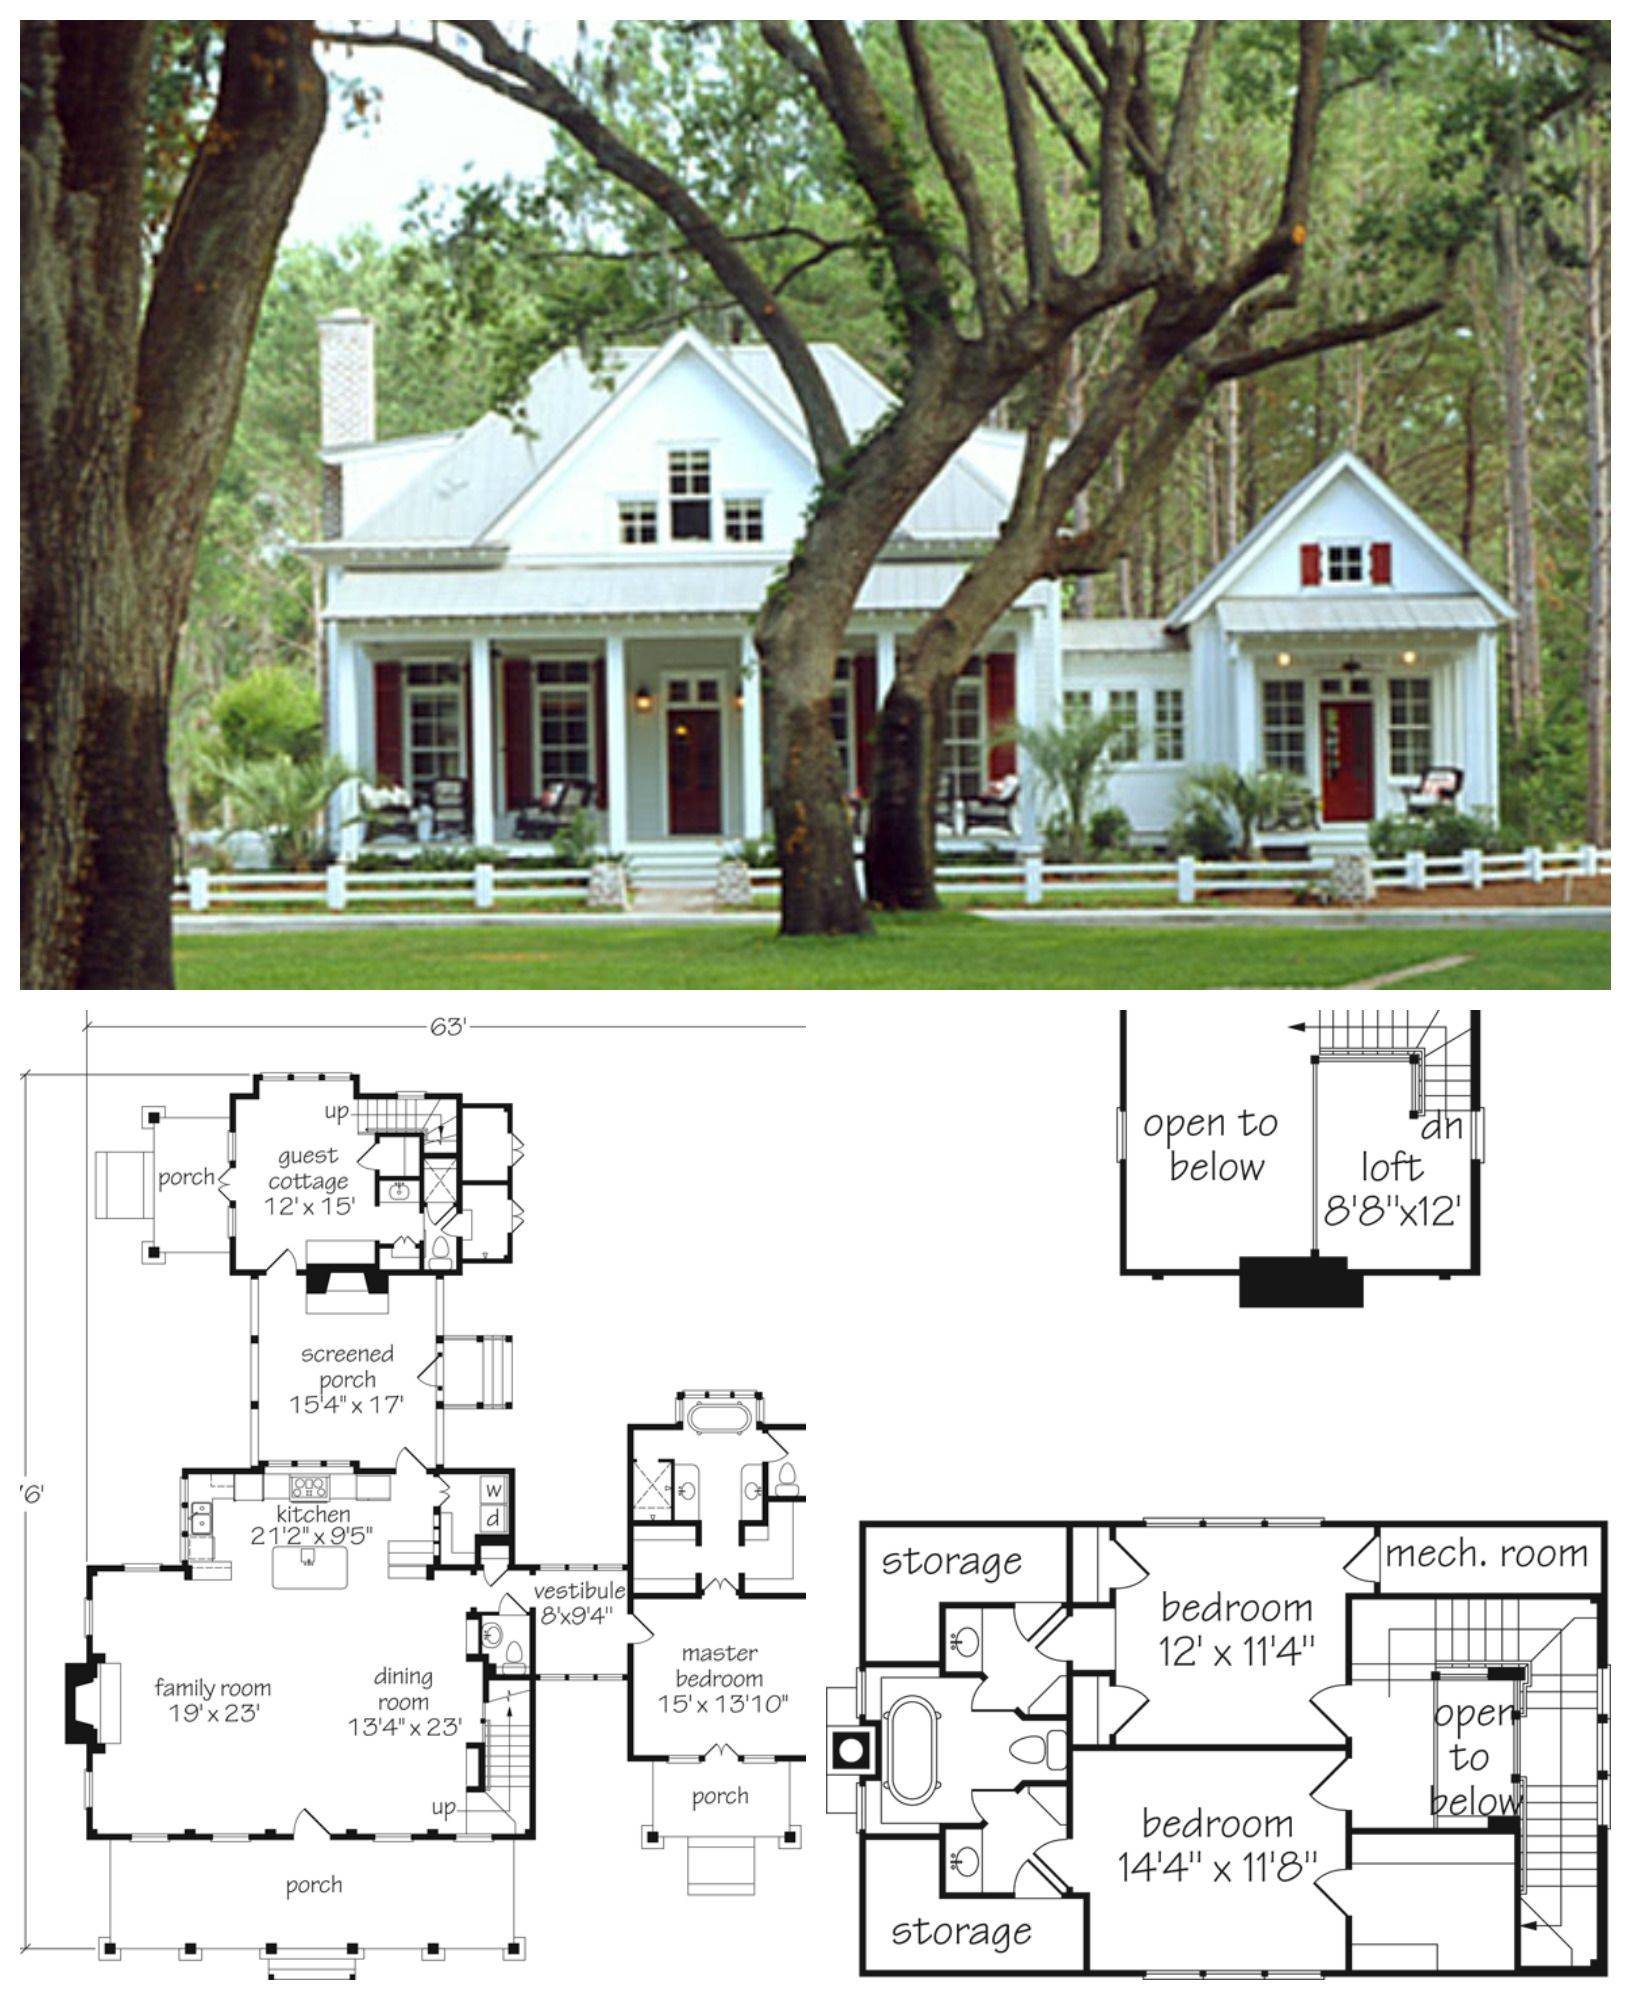 Darling 2000 Sq Ft Cottage With Private Master Bedroom And Quaint Guest Cottage In Back Cottage House Plans House Plans Farmhouse House Plans